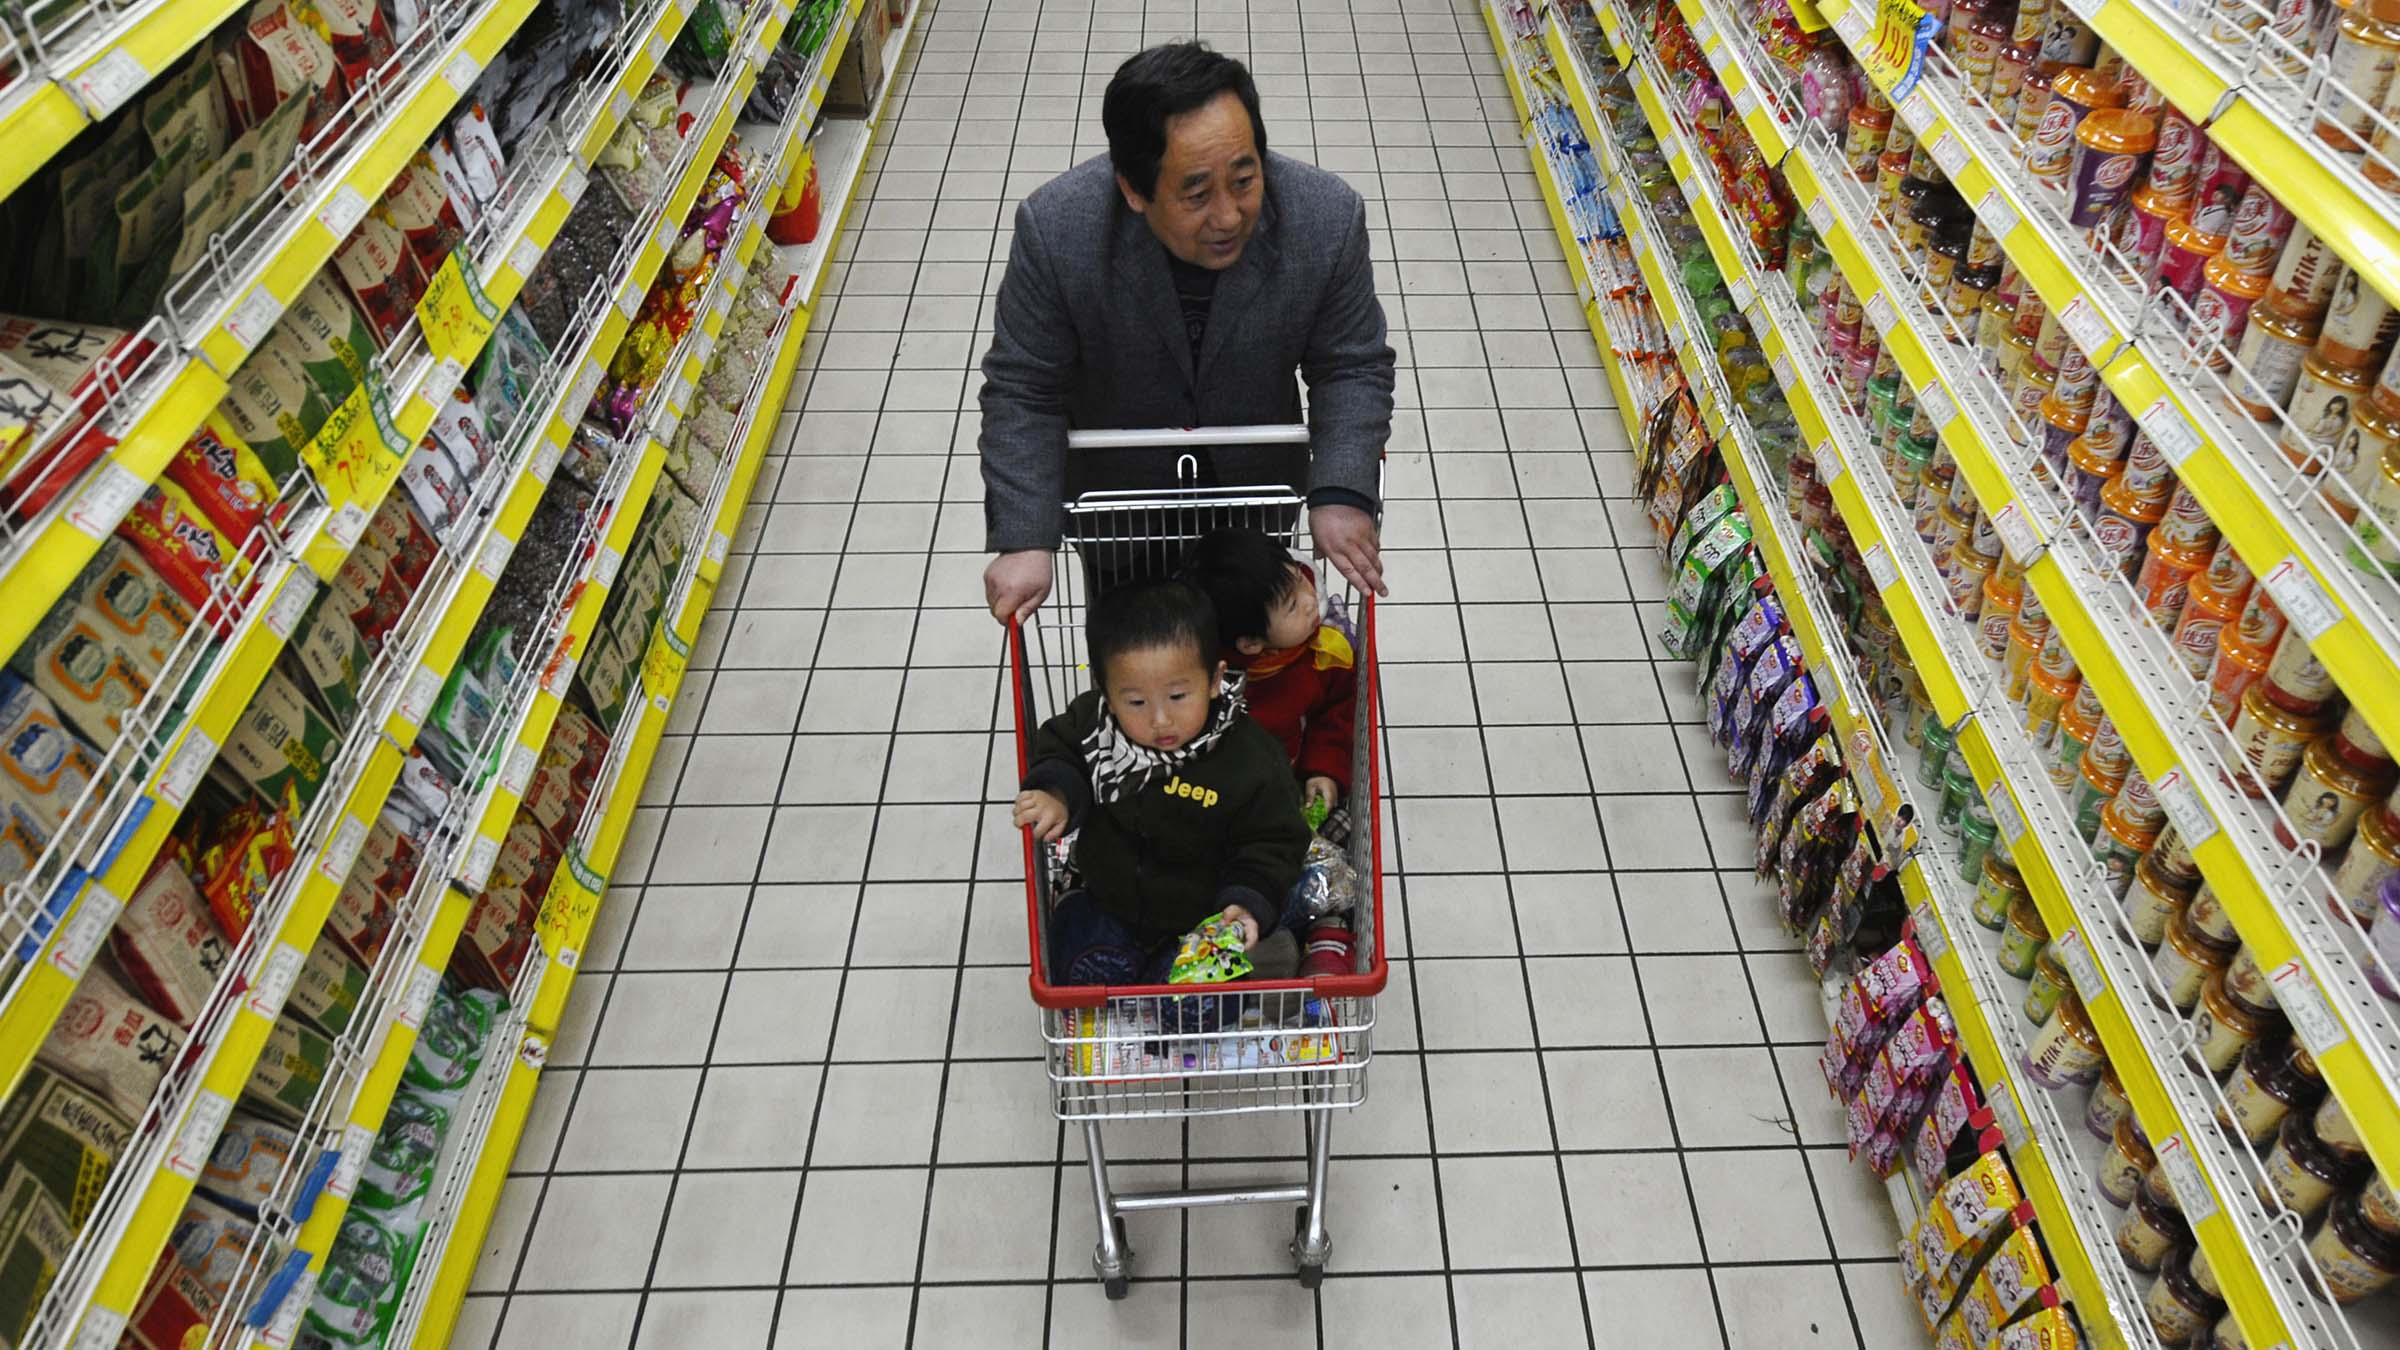 A customer shops with children at a supermarket in Changzhi, Shanxi province March 11, 2010. Chinese consumer inflation spurted to a 16-month high in February and a raft of economic data displayed broad-based strength, providing fresh arguments for policy tightening sooner rather than later.  REUTERS/Stringer (CHINA - Tags: BUSINESS POLITICS SOCIETY) CHINA OUT. NO COMMERCIAL OR EDITORIAL SALES IN CHINA - RTR2BHJ9